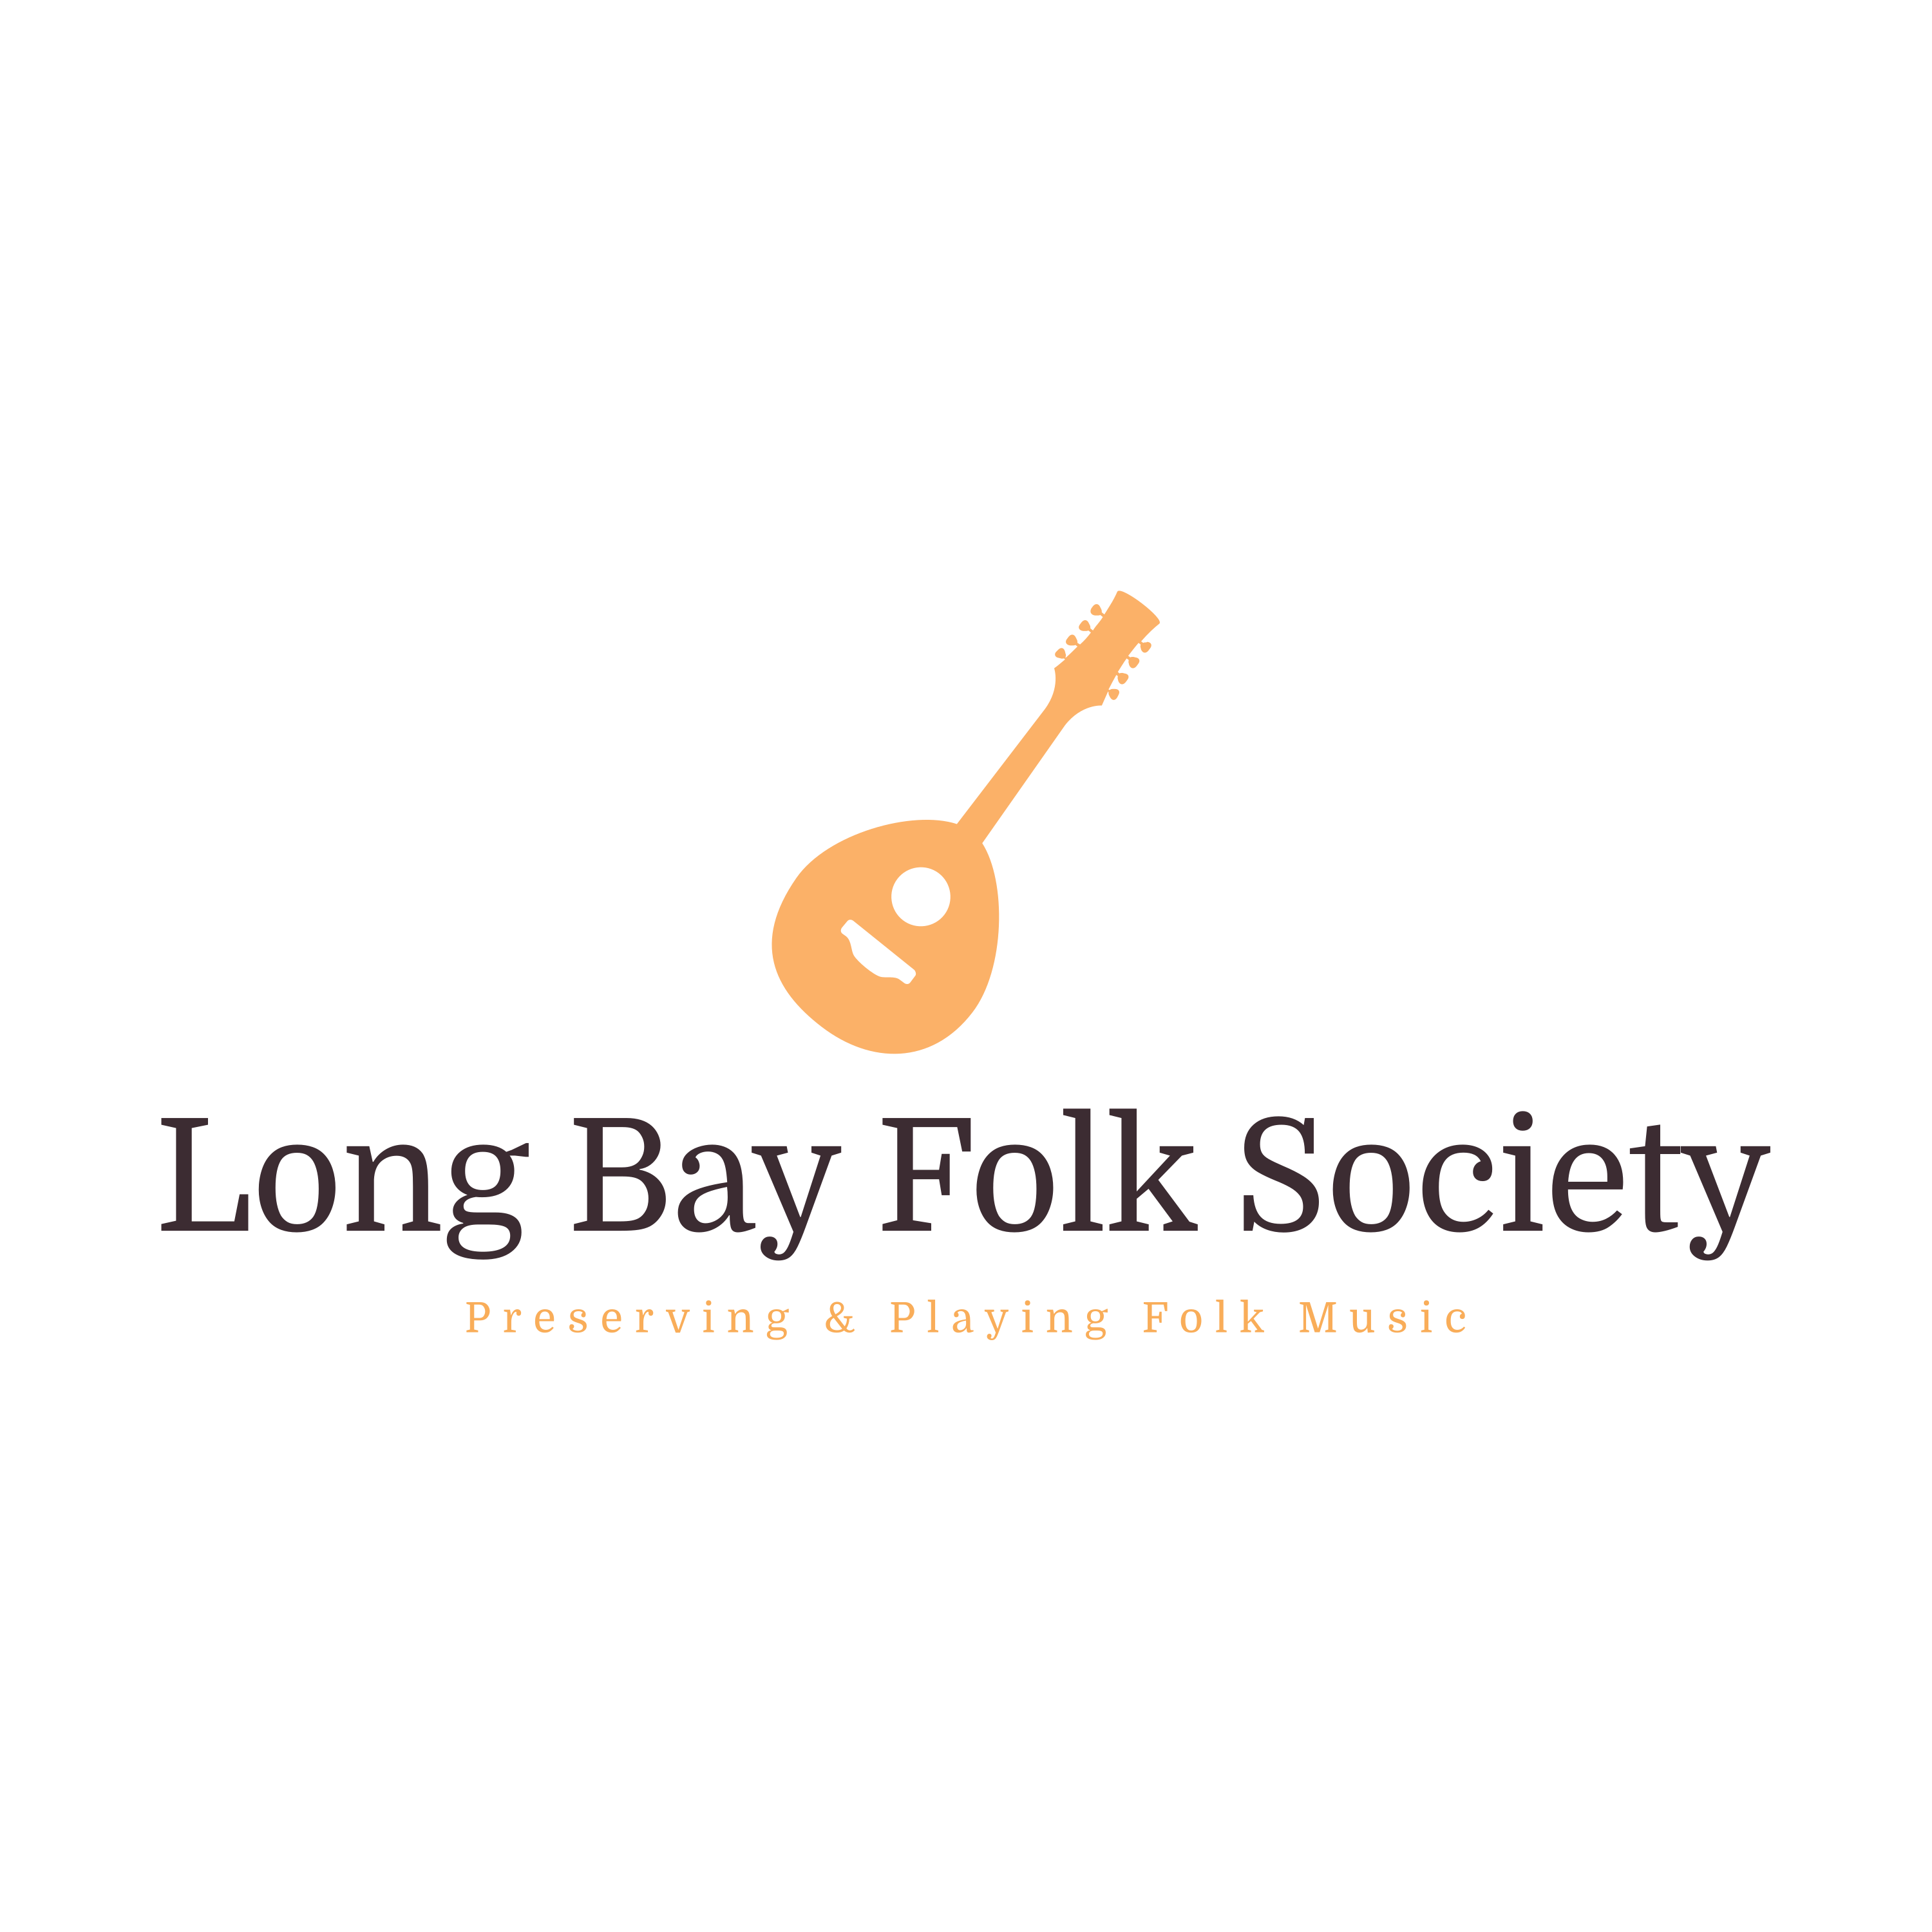 Long Bay Folk Society